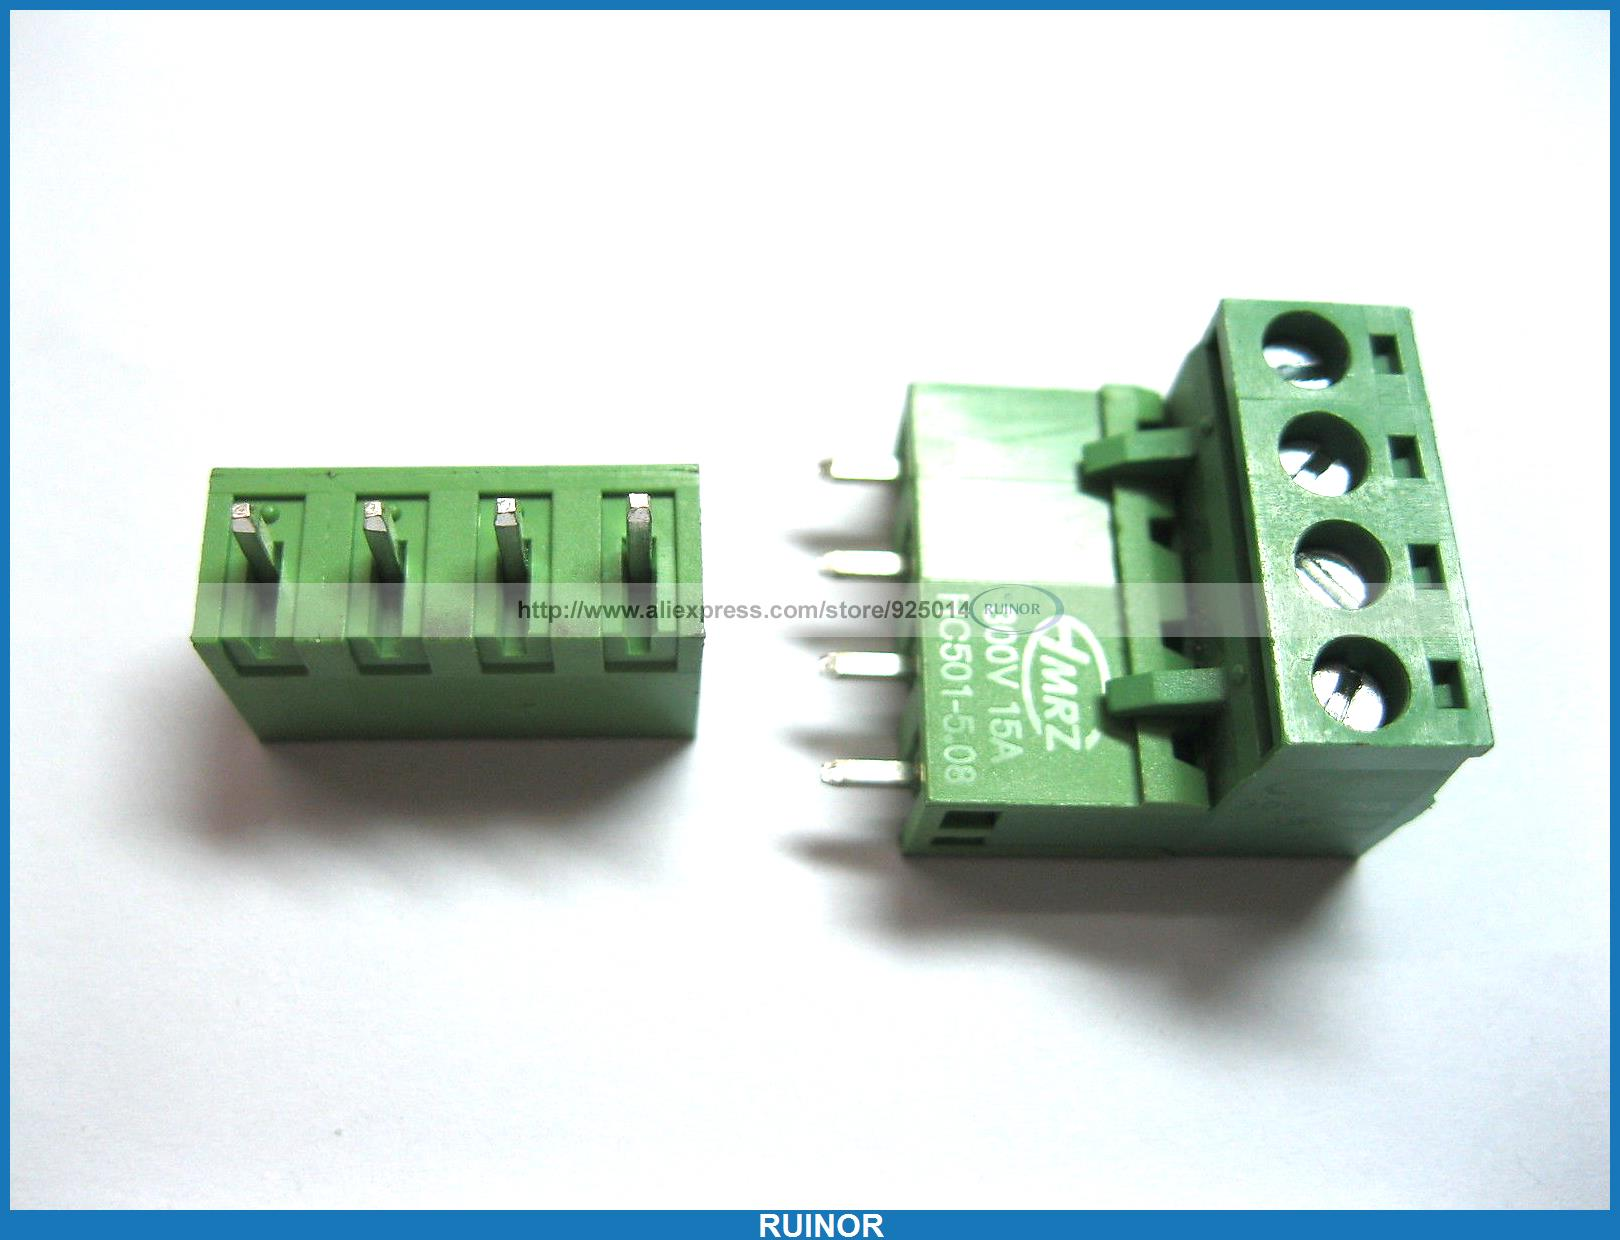 50 Pcs 5 08mm Straight 4 Pin Screw Terminal Block Connector Pluggable Type Green 100 pcs green 6 pin 5 08mm screw terminal block connector pluggable type